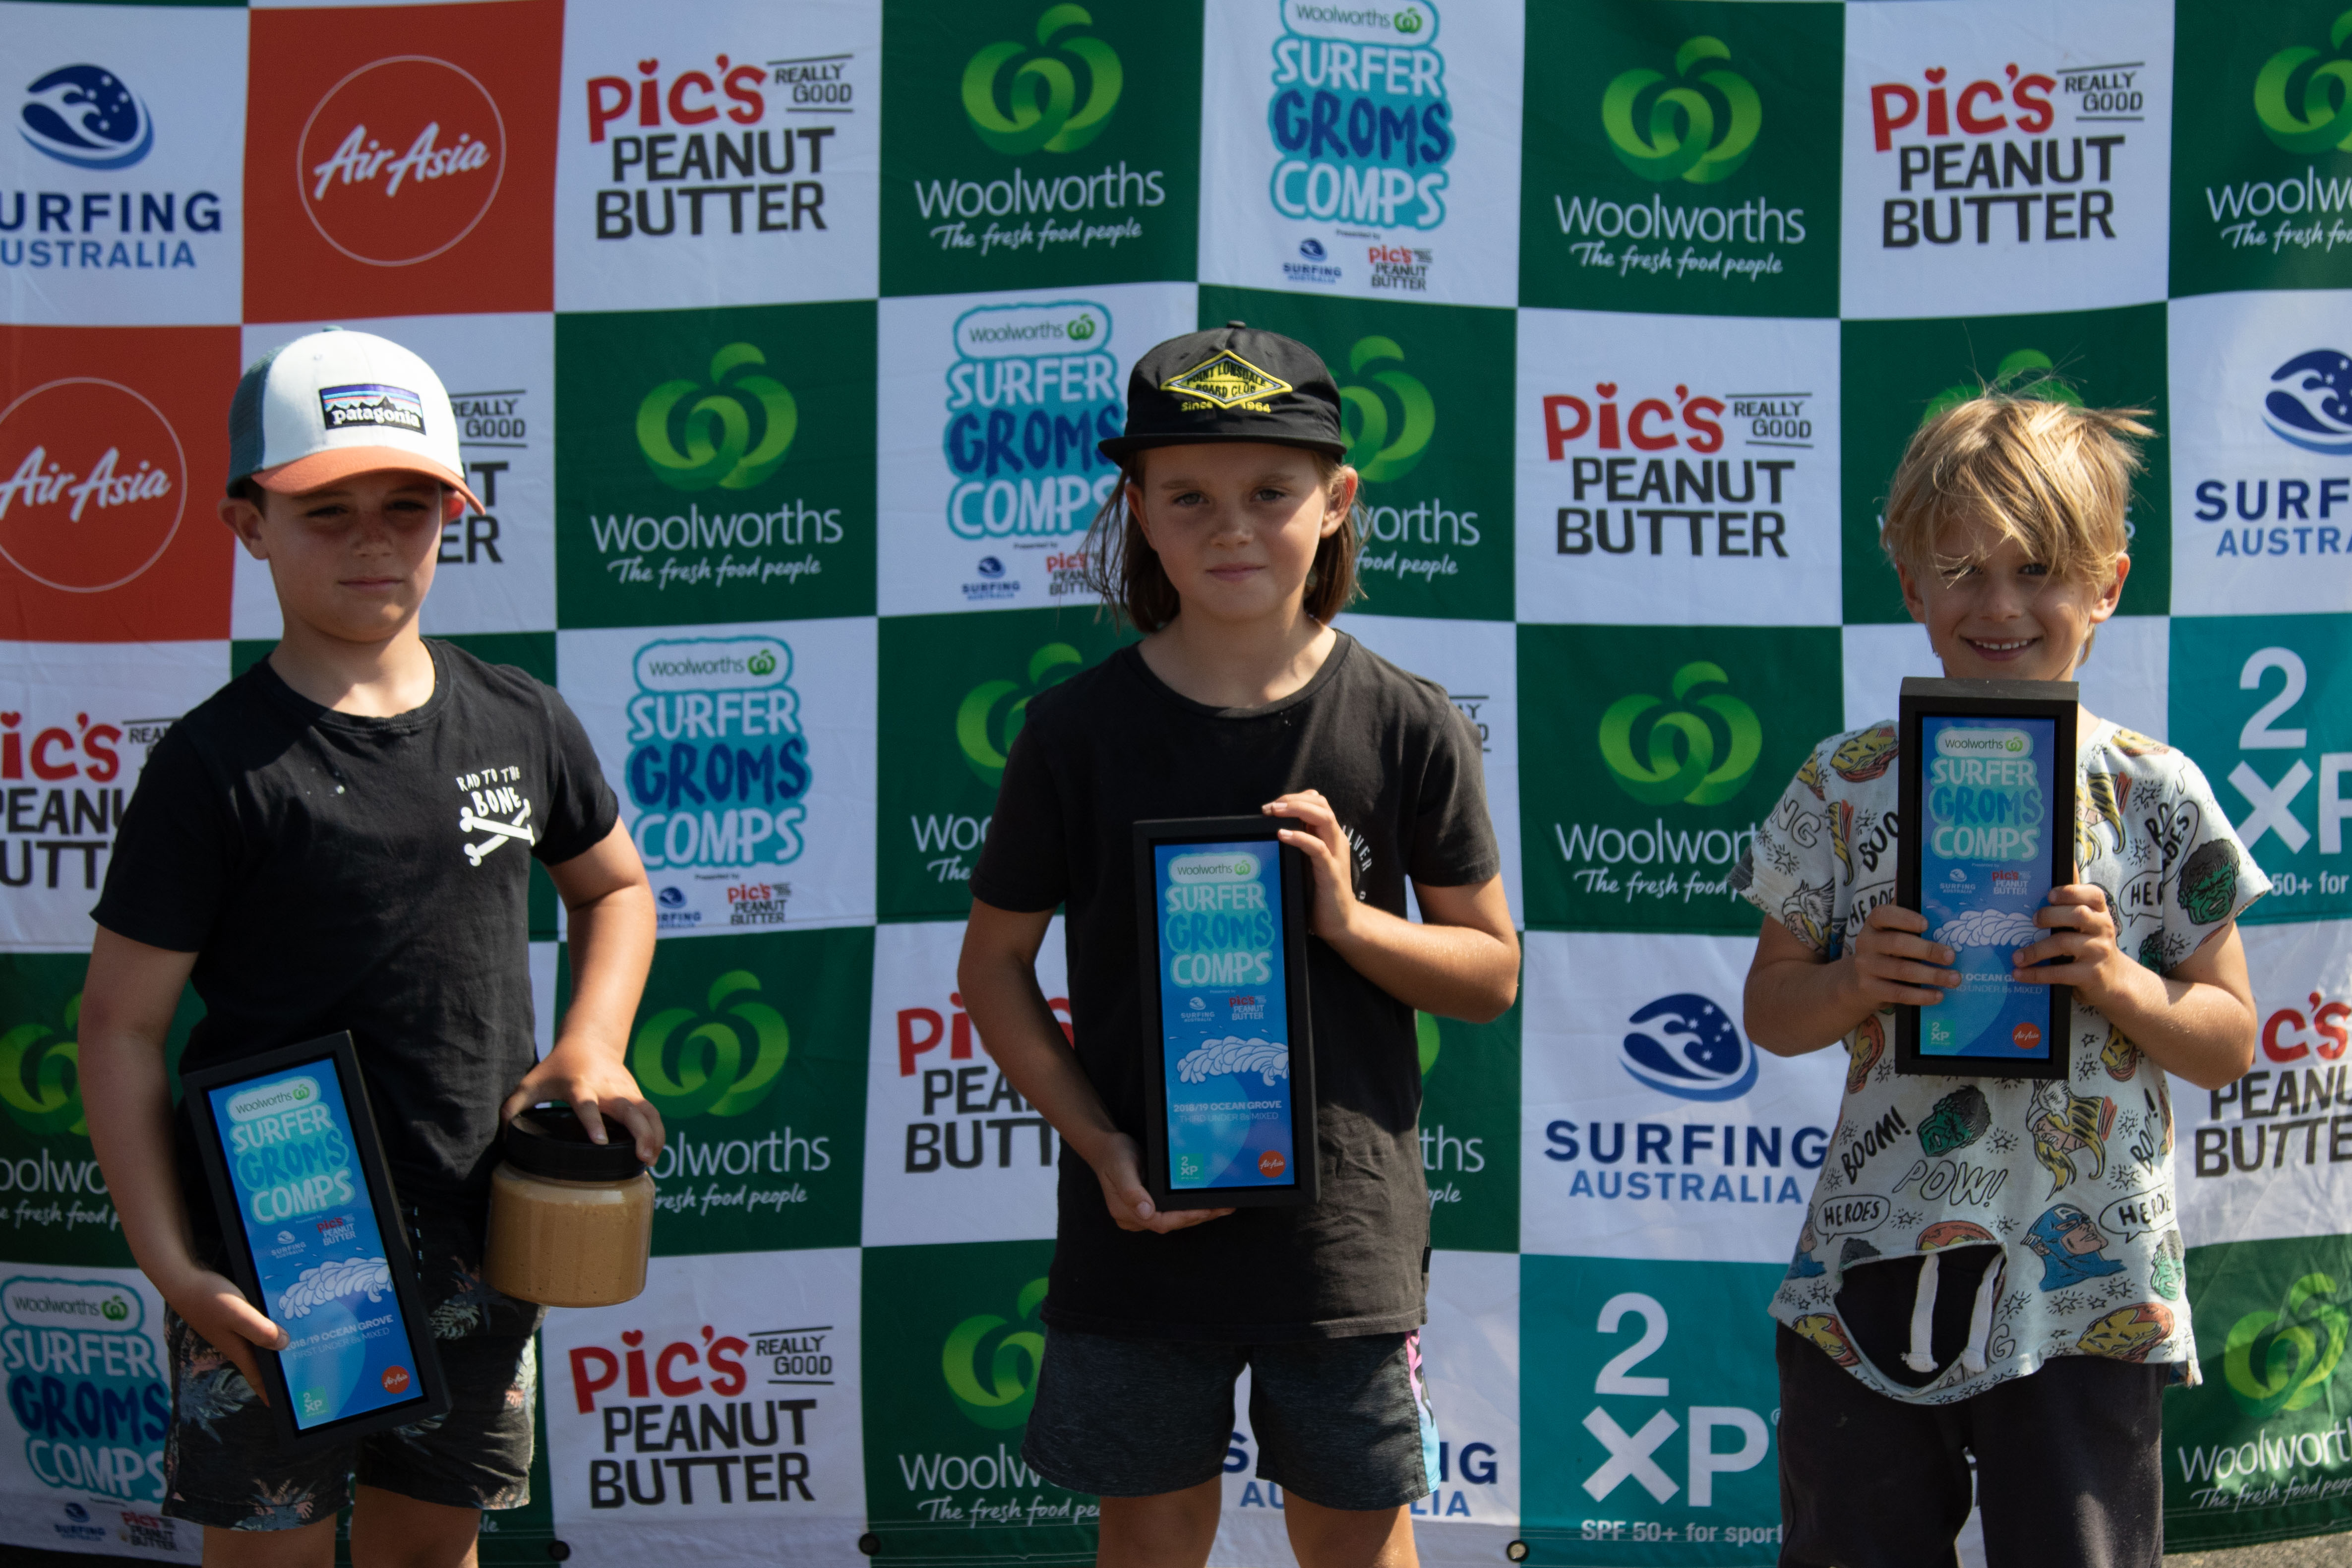 Winners Woolworths Surfer Groms Comp2019 Zl 026